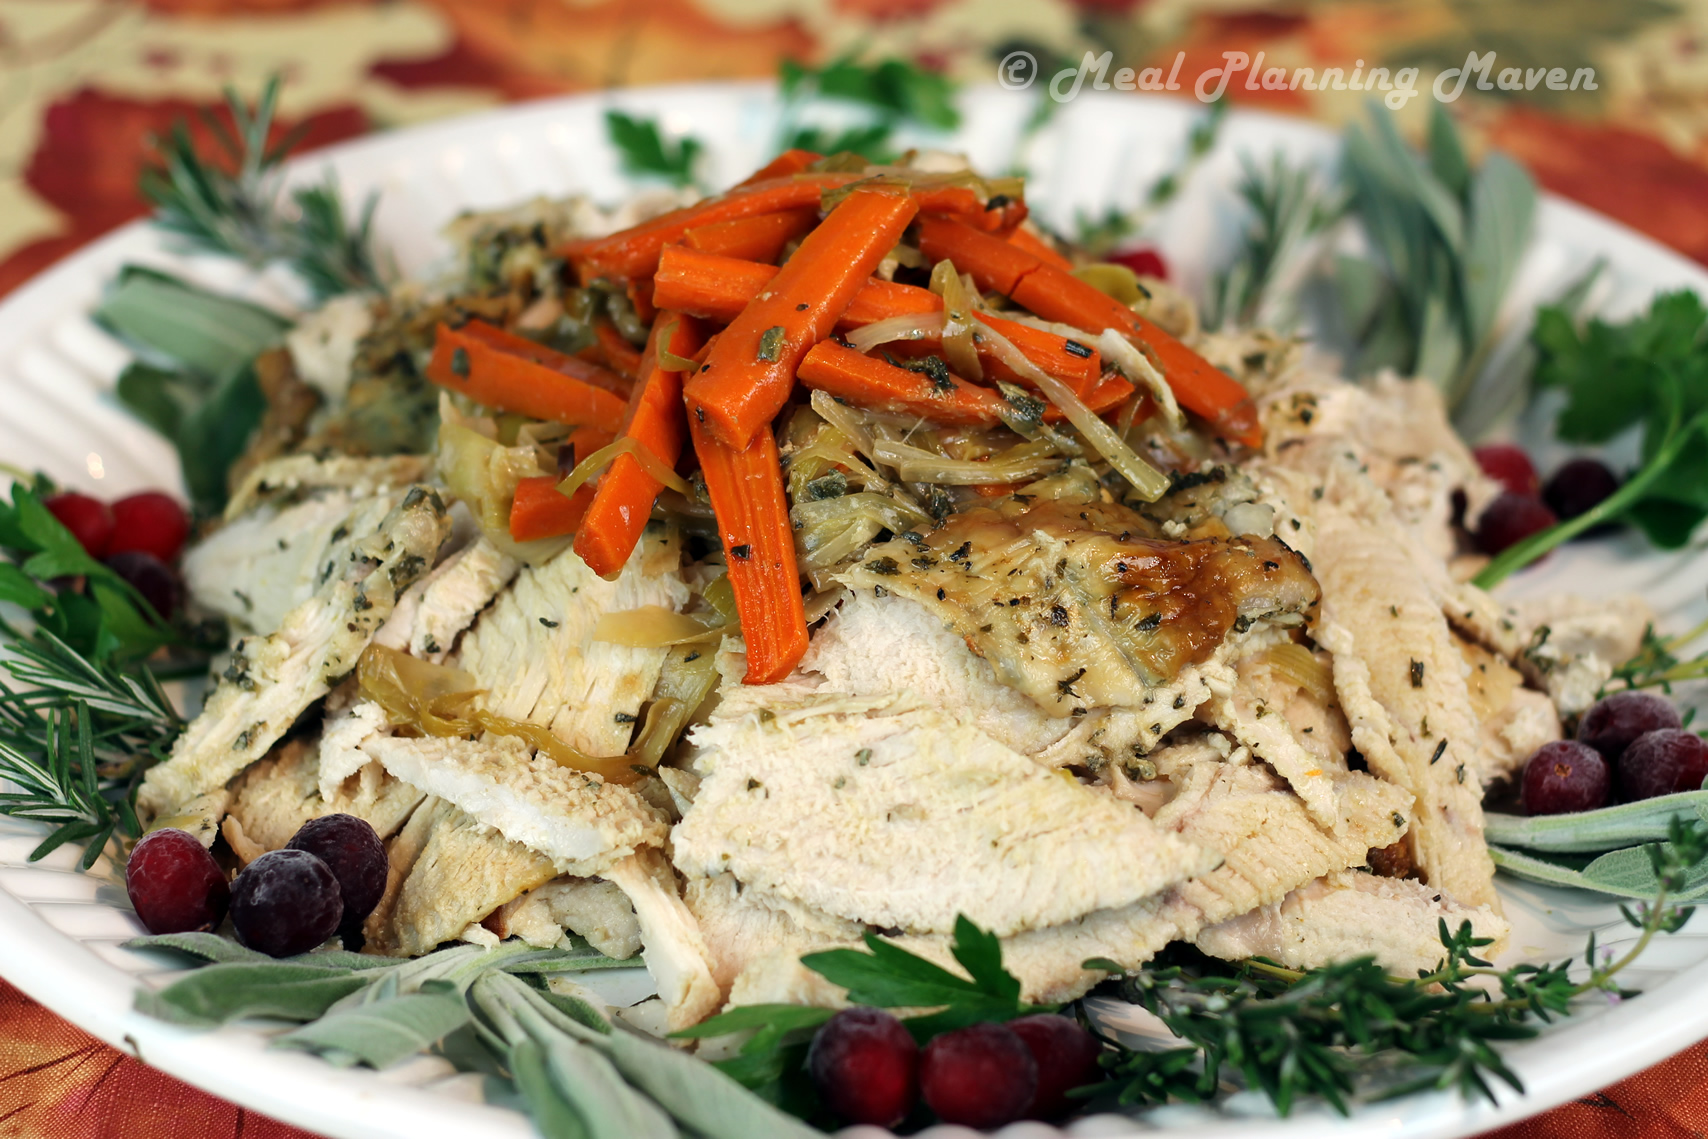 Herb-Crusted Turkey Breast with Leeks 'n Carrots